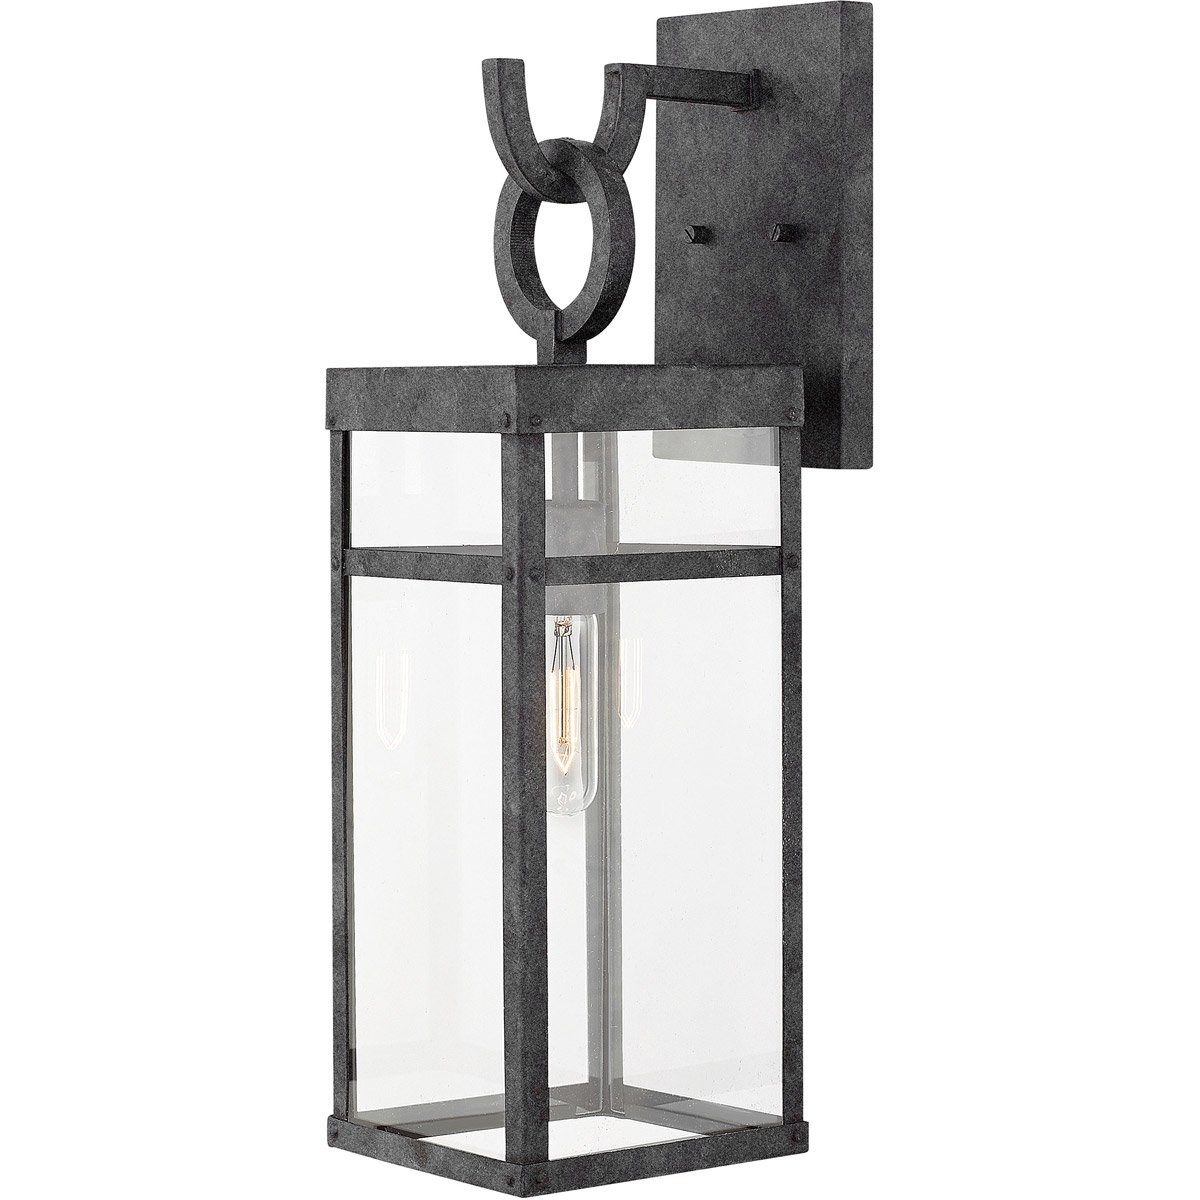 Hinkley Lighting 2804Dz Porter 1 Light 22 Inch Aged Zinc Outdoor In Mini Wall Mount Hinkley Lighting (#12 of 15)